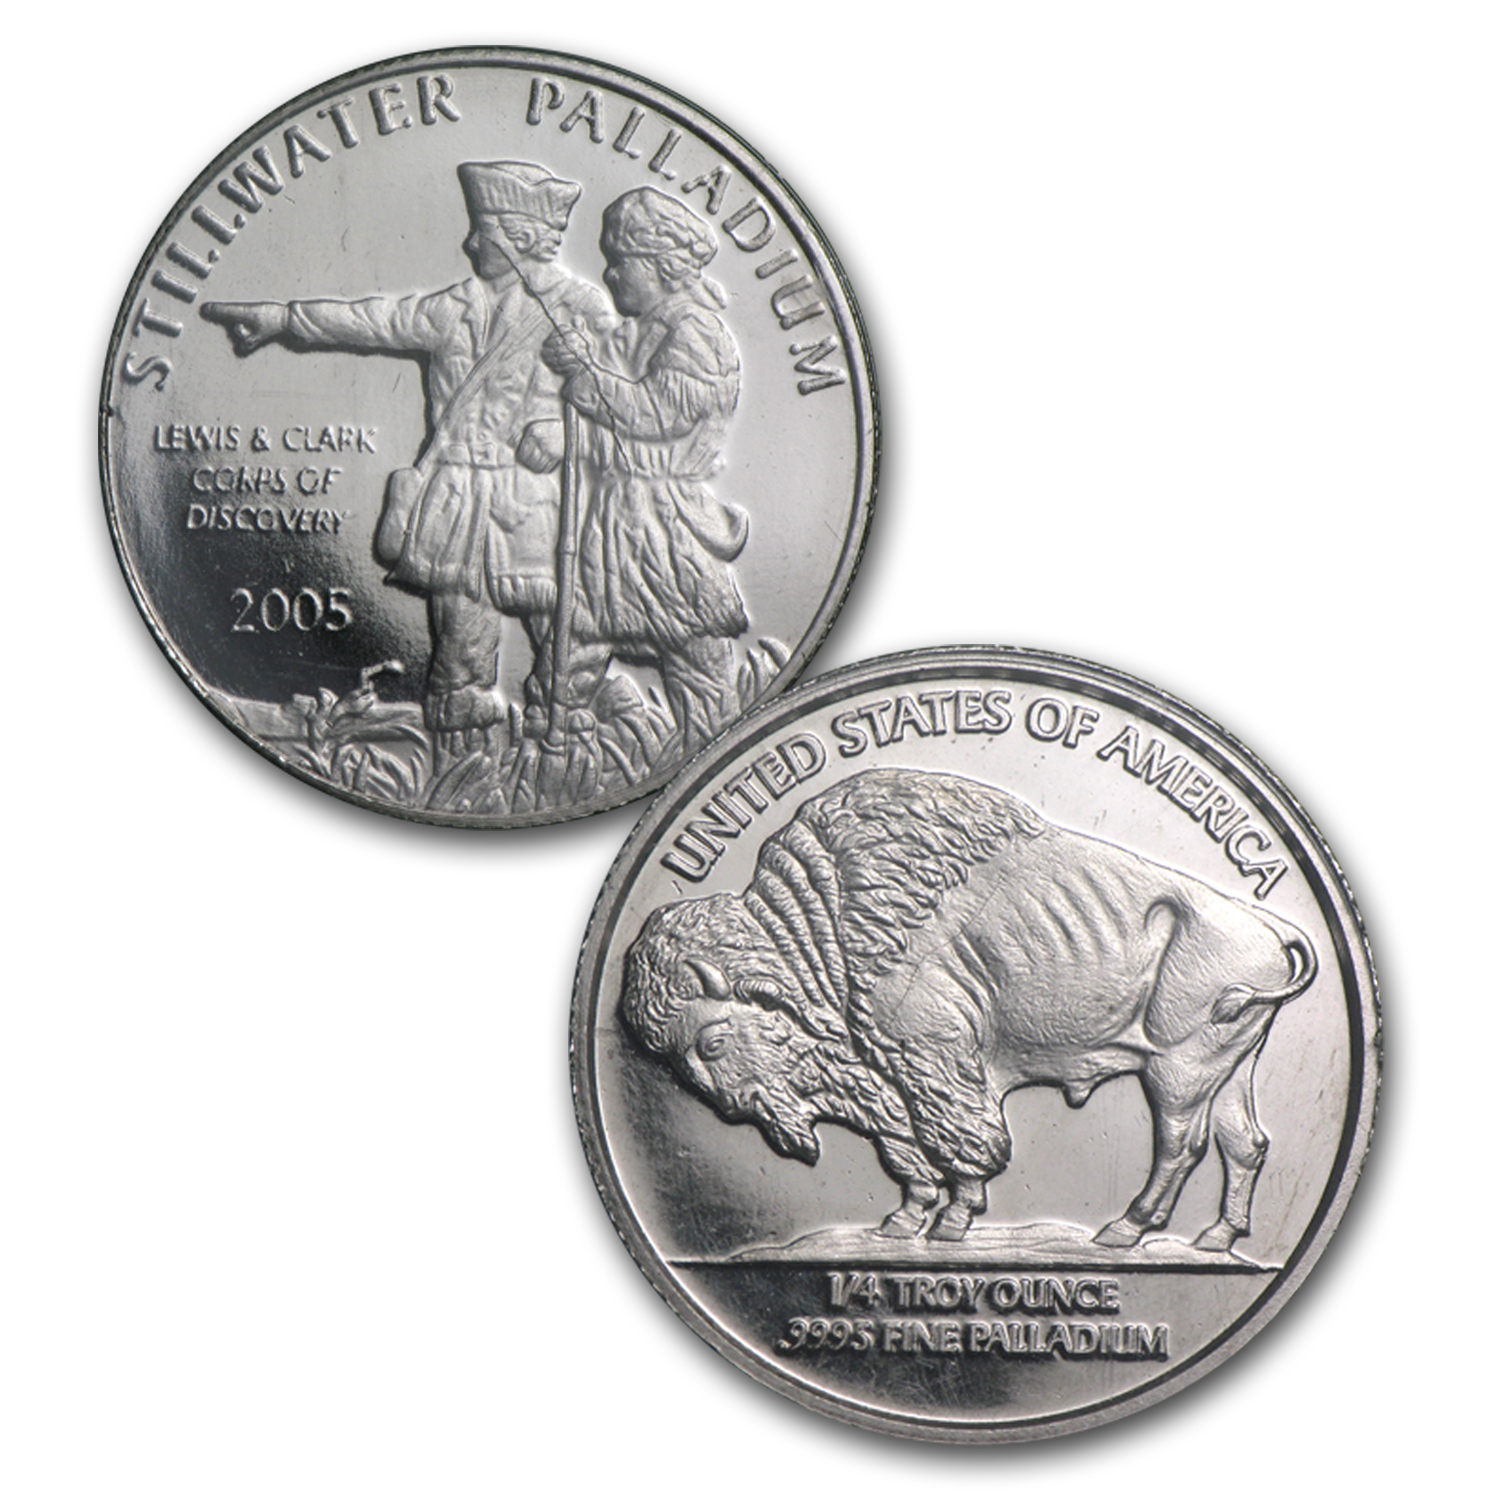 1/4 oz Palladium Round - Johnson Matthey Lewis & Clark (4 Pack)